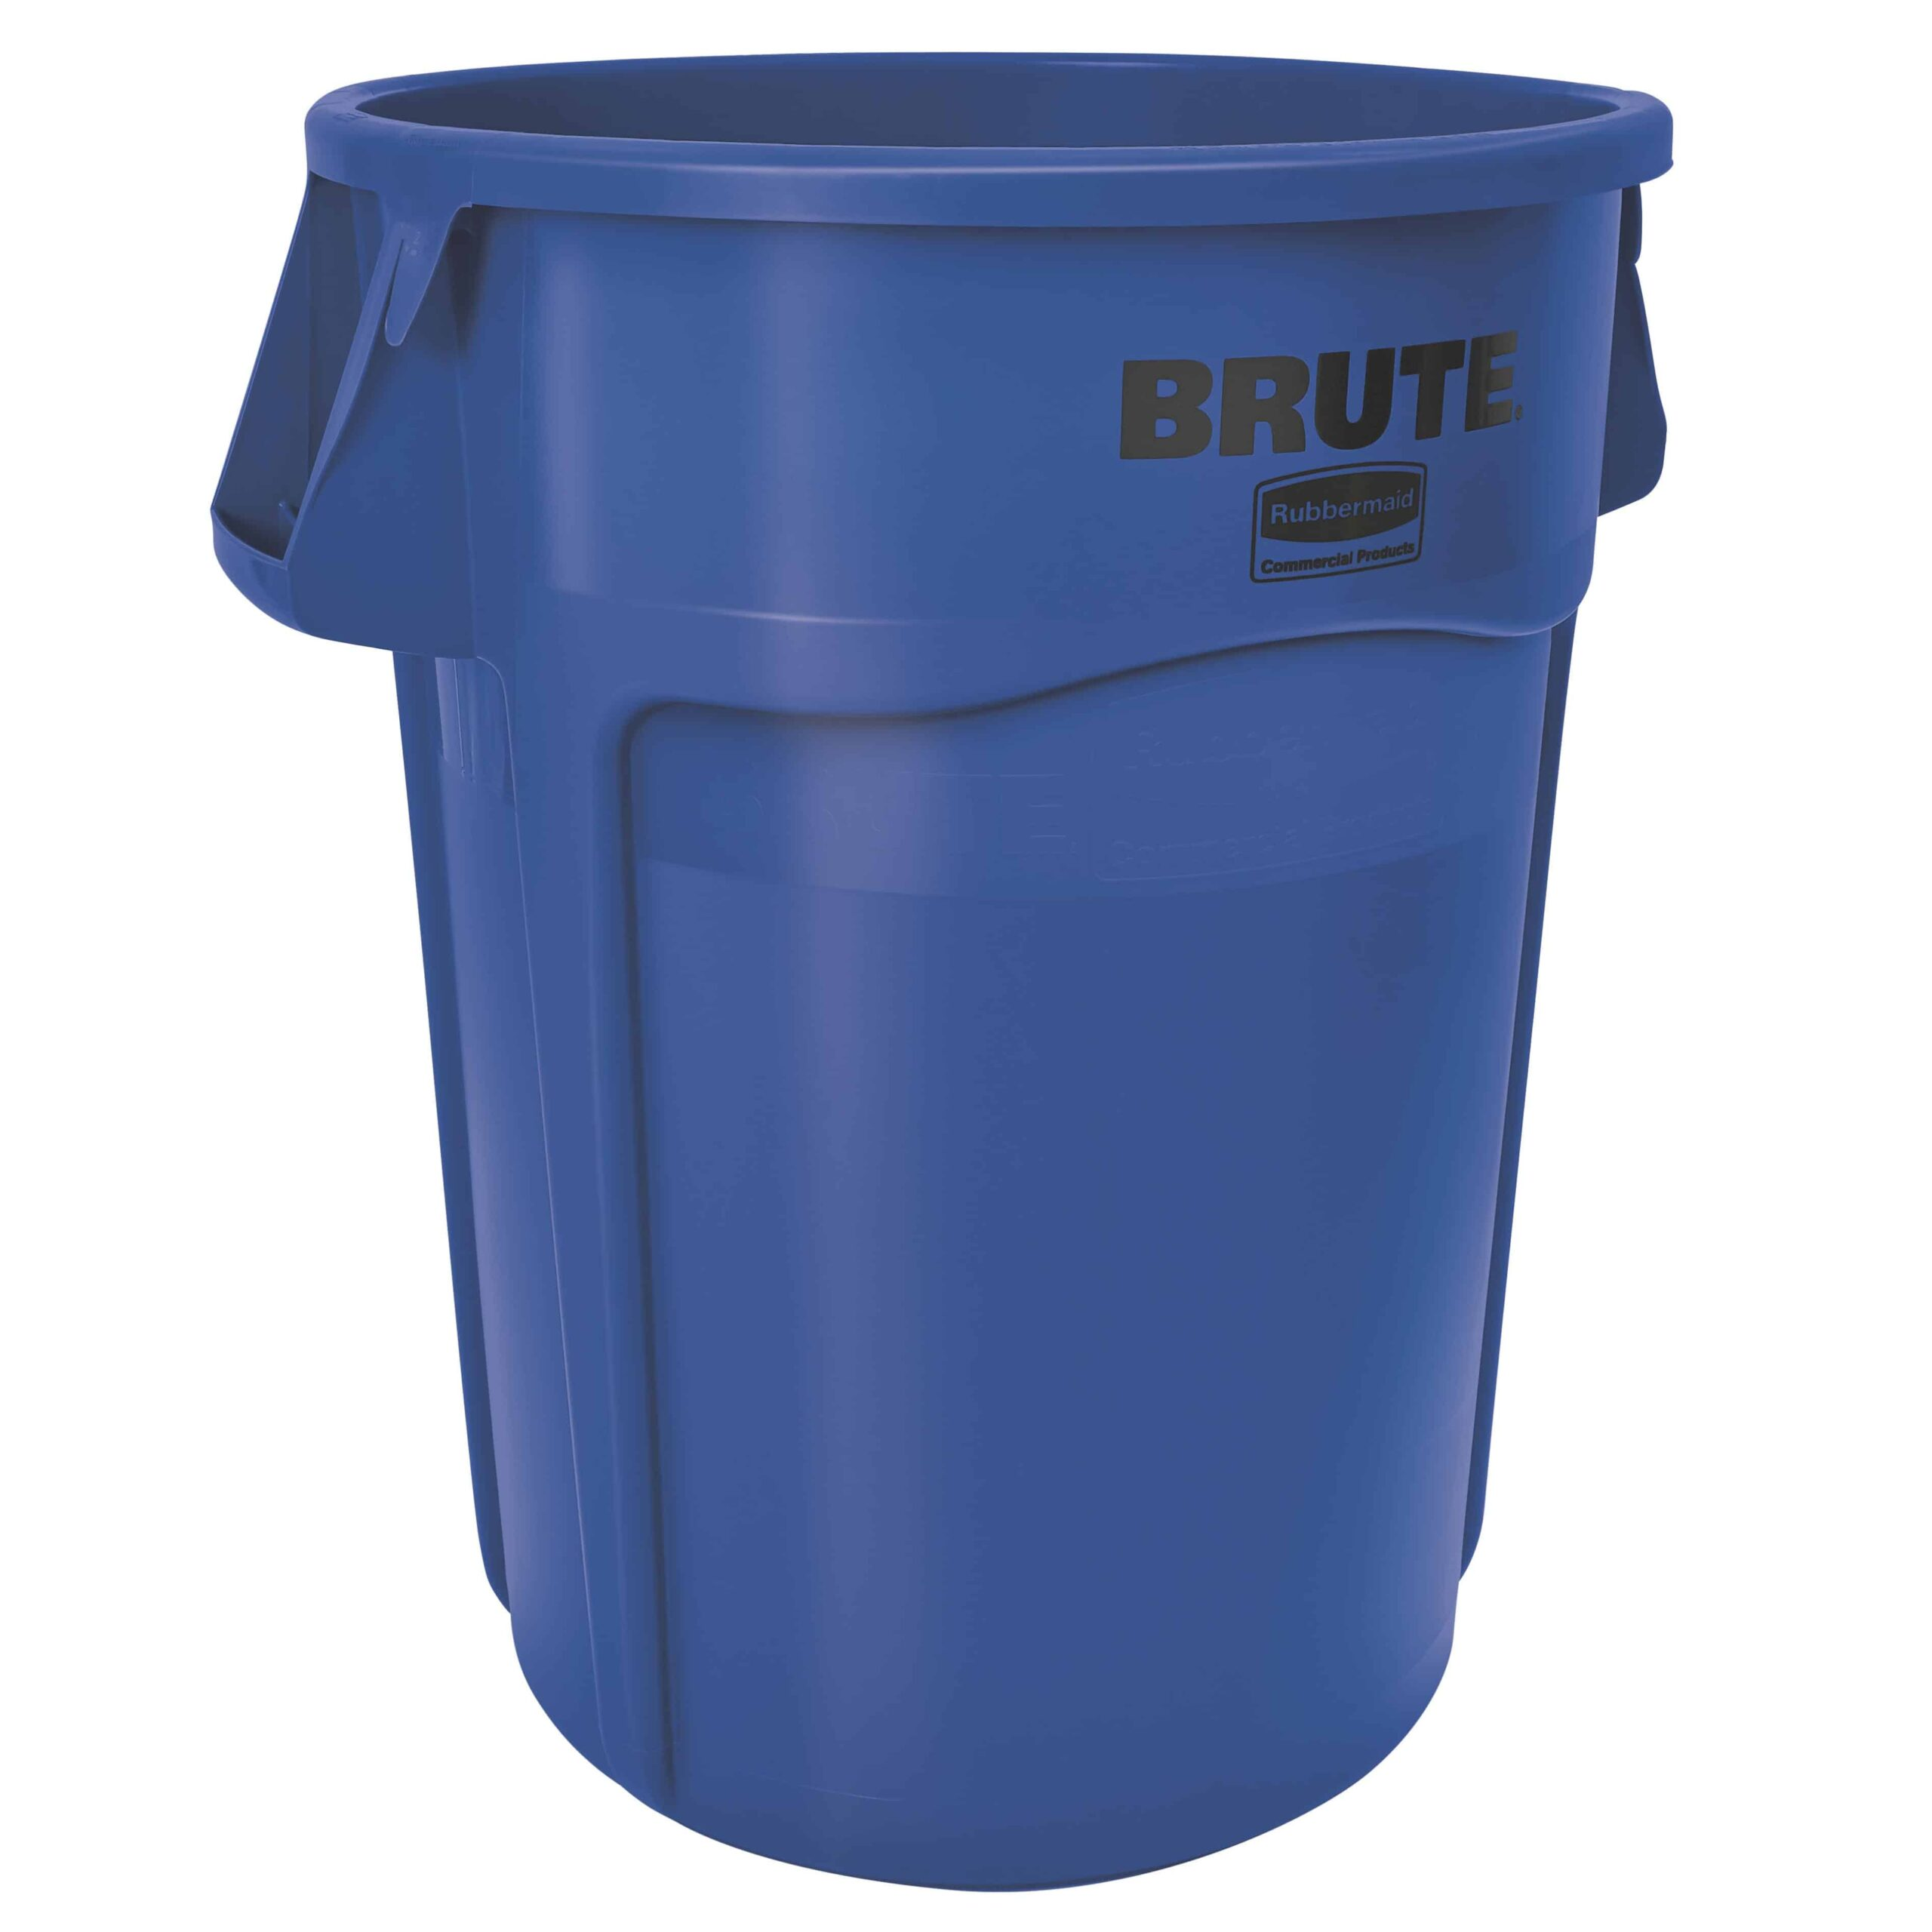 Rubbermaid Brute Waste Containers Free Delivery